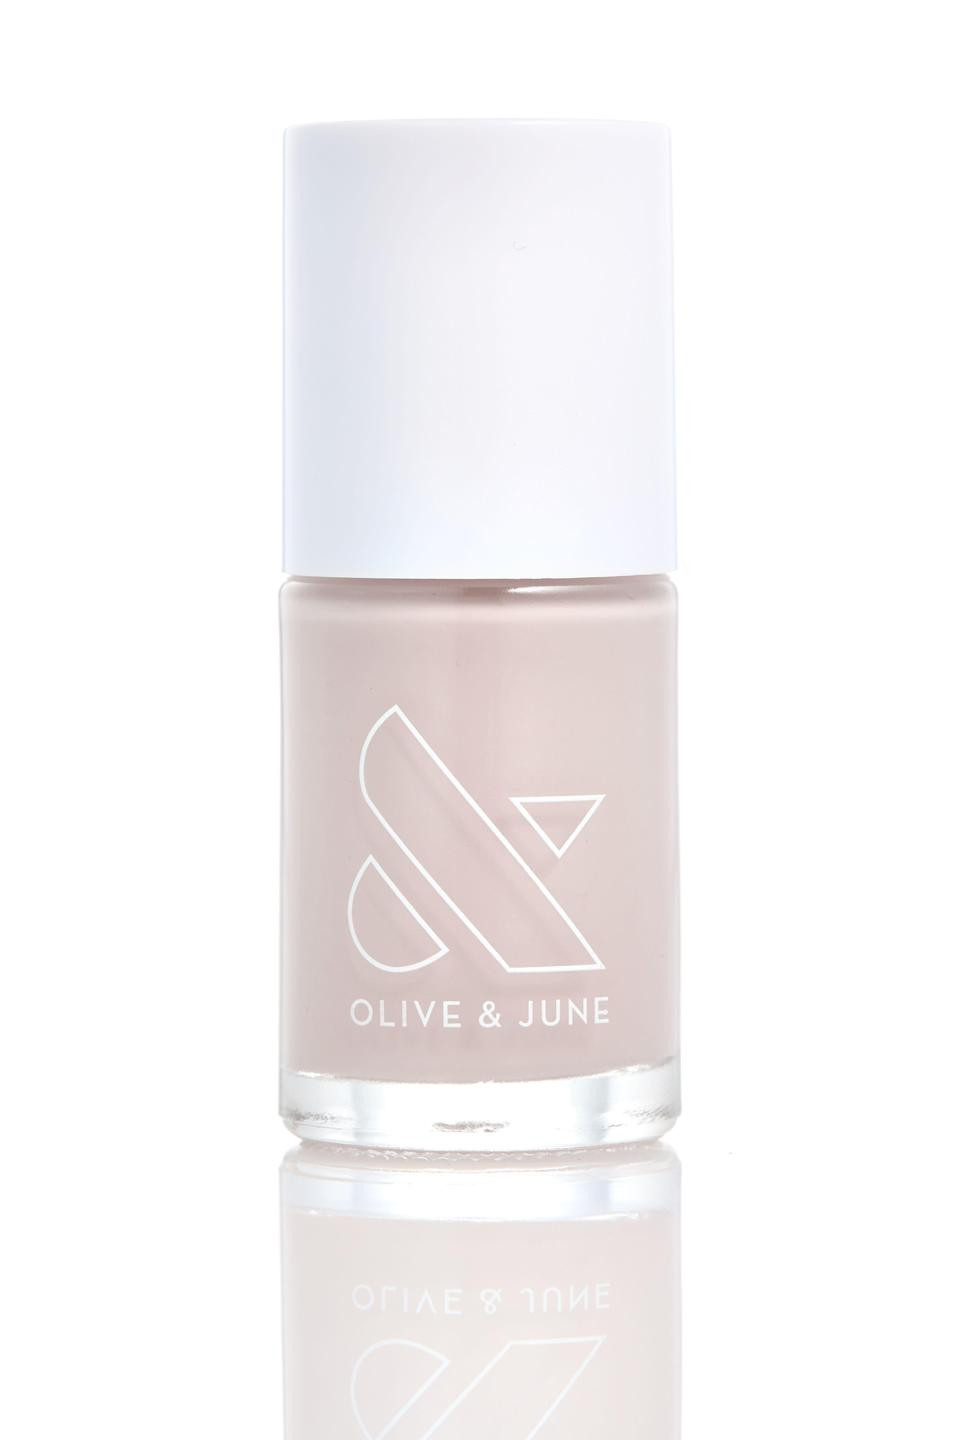 """<p>Want a little more coverage? Mandy's blush tone will add some color to your usual naked mani.</p><br><br><strong>Olive & June</strong> Nail Polish in Mandy, $8, available at <a href=""""https://olivejune.com/collections/nail-polish/products/mandy"""" rel=""""nofollow noopener"""" target=""""_blank"""" data-ylk=""""slk:Olive & June"""" class=""""link rapid-noclick-resp"""">Olive & June</a>"""